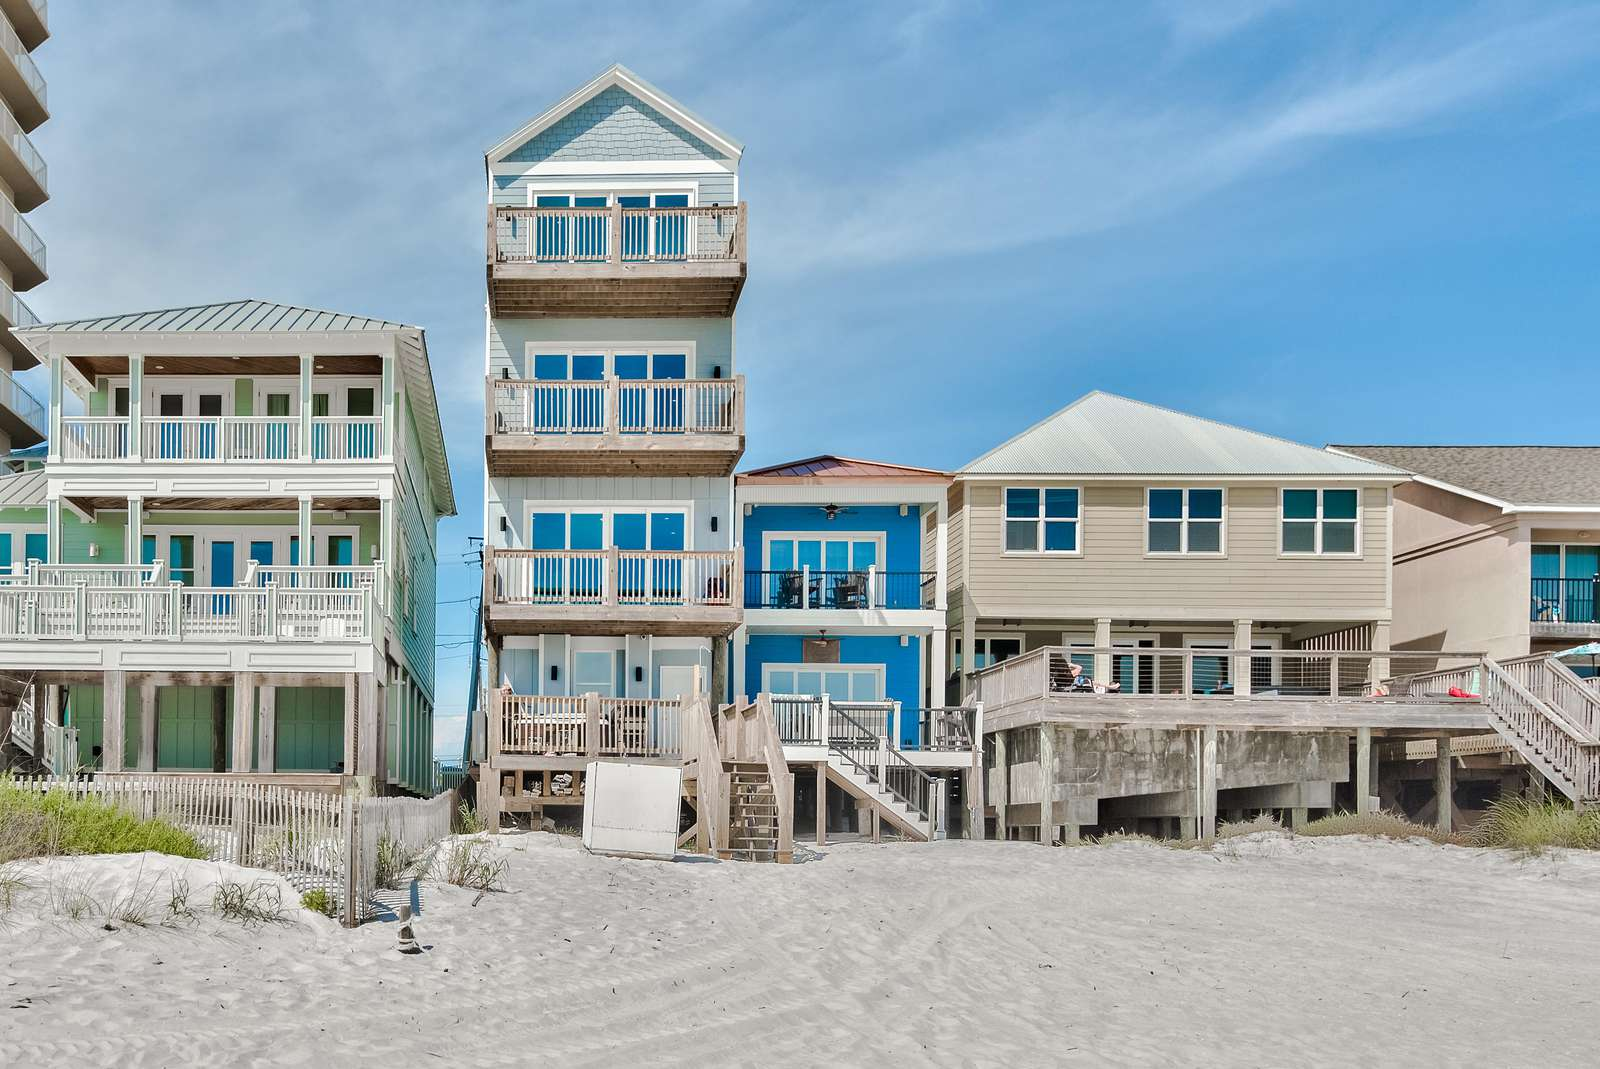 The Sandcastle - 8 Bedroom with Private Hot Tub!  Beachfront!!!